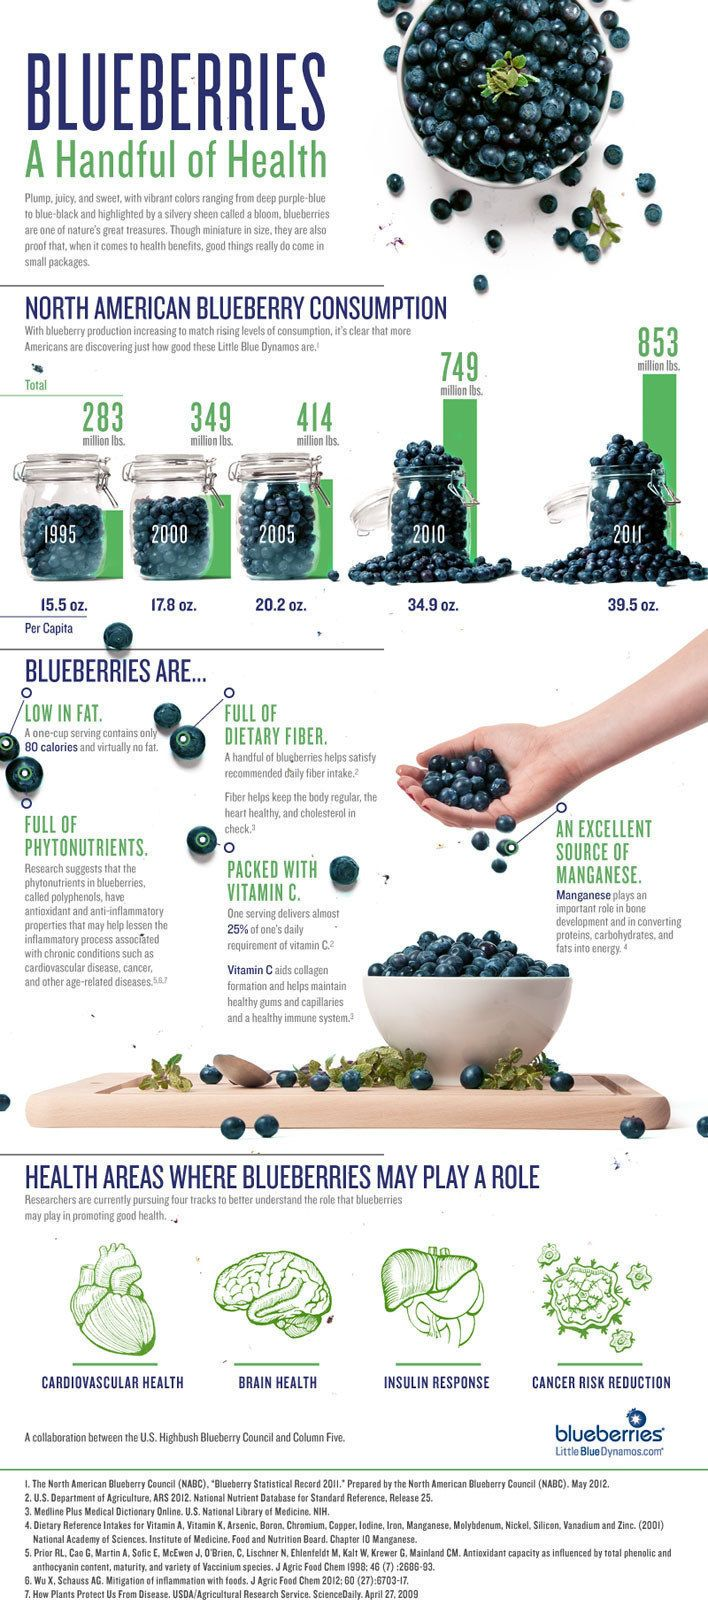 Health Benefits Of Blueberries (Infographic) - I've been obsessed with frozen blueberries! Spread them out on wax paper after washing & store in zip lock bags. Eating them by the handful, on my oatmeal, etc. I didn't used to like them...now I LOVE them!